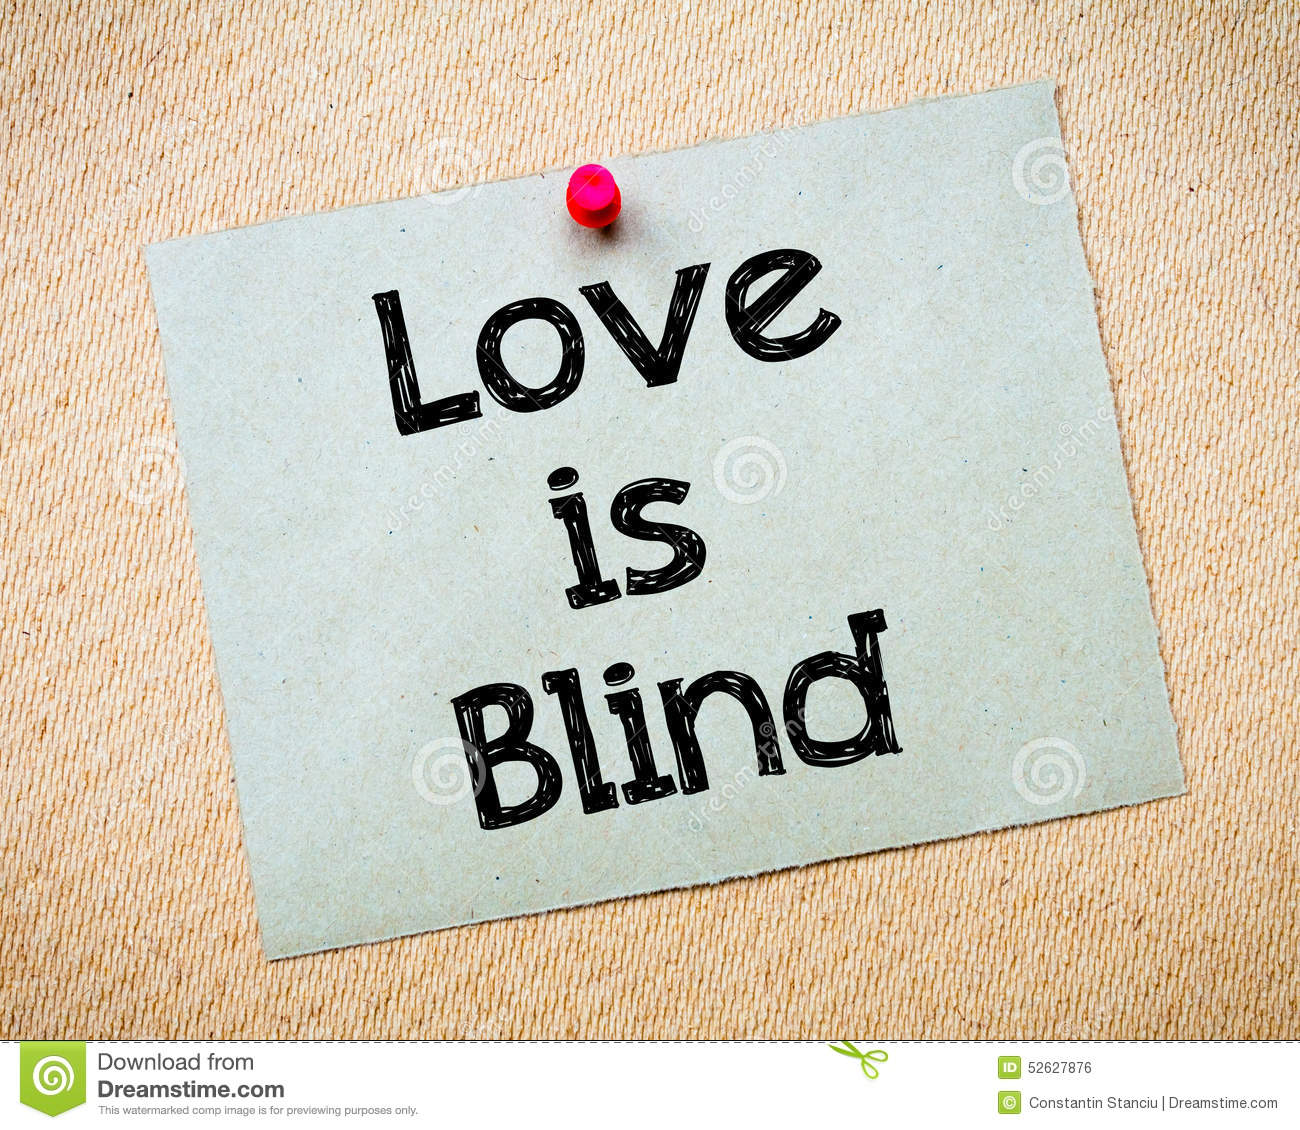 Love is blind essay